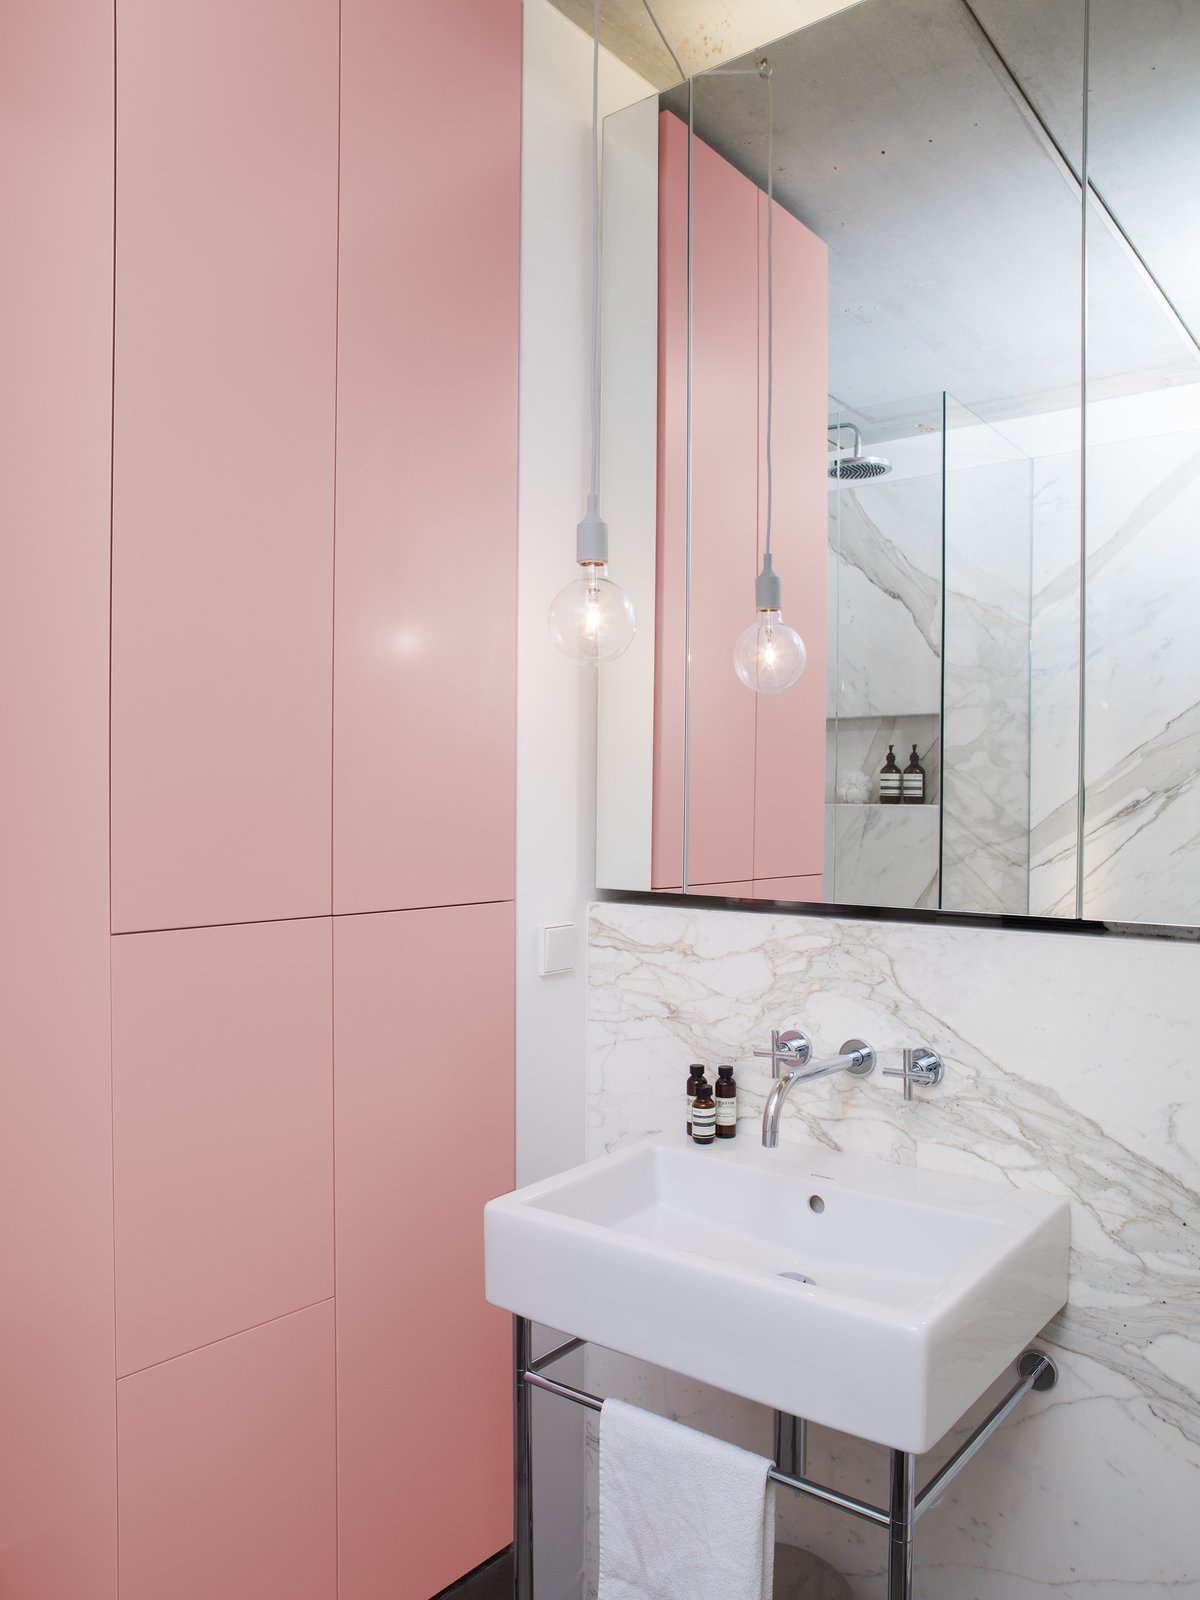 Bath Room, Pendant Lighting, Marble Wall, and Wall Mount Sink Smooth, handleless joinery are a classical, but nonetheless creative way to make storage systems beautifully discreet with ample room for storage.  Best Photos from 8 Bathroom Storage Hacks You Probably Haven't Tried Yet